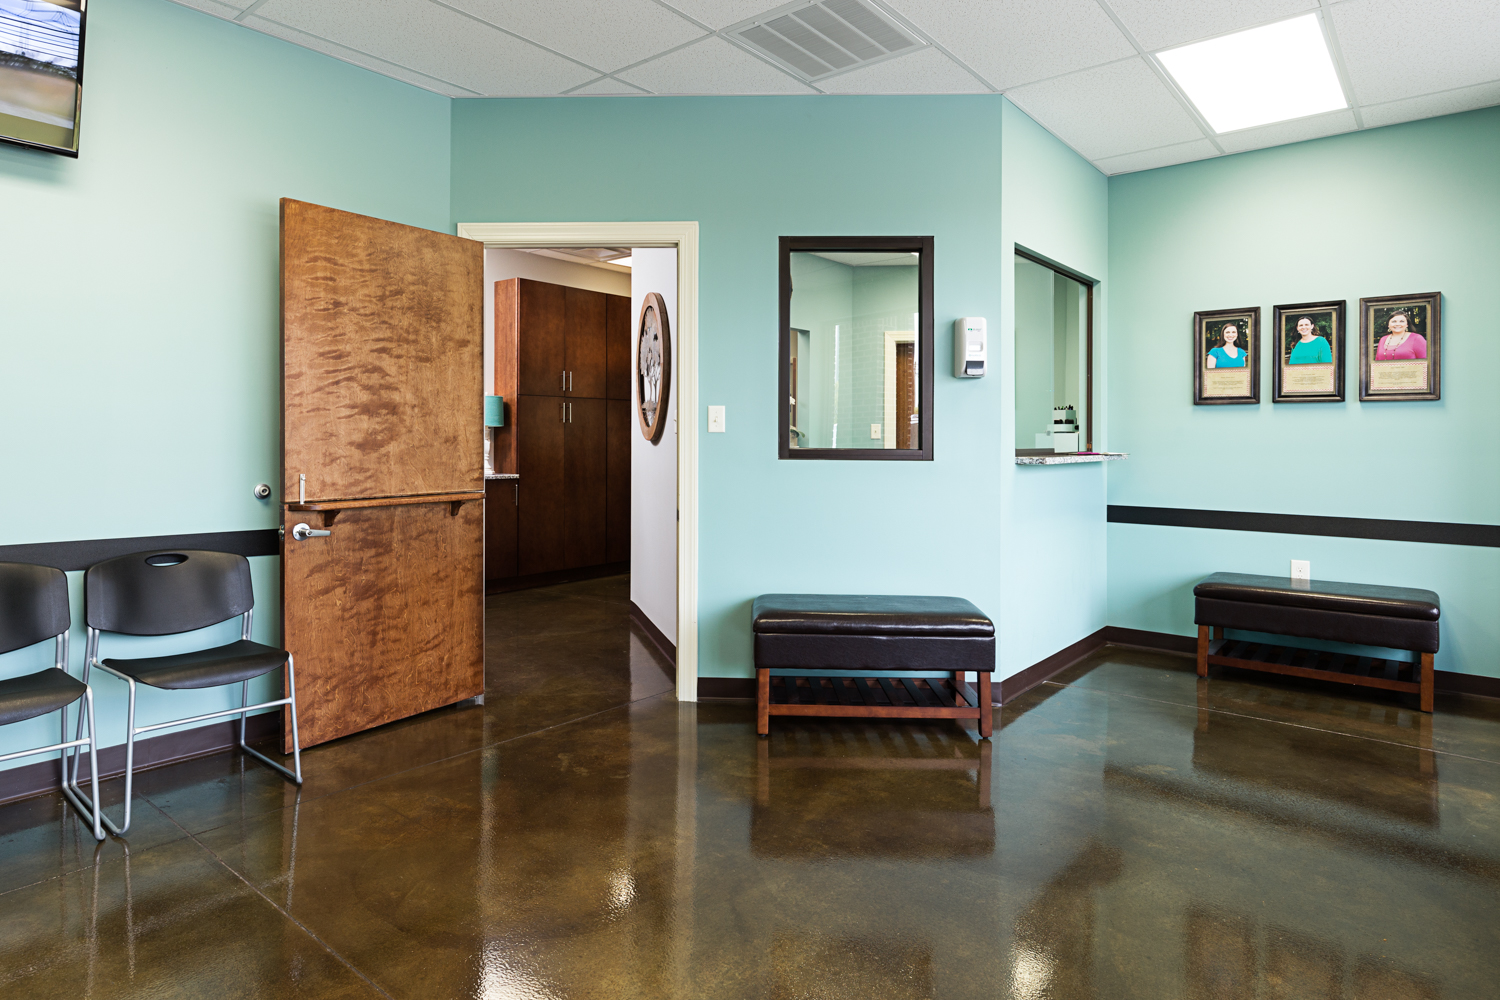 Pathway Pediatrics - Birmingham AL Commercial Photography0586.jpg